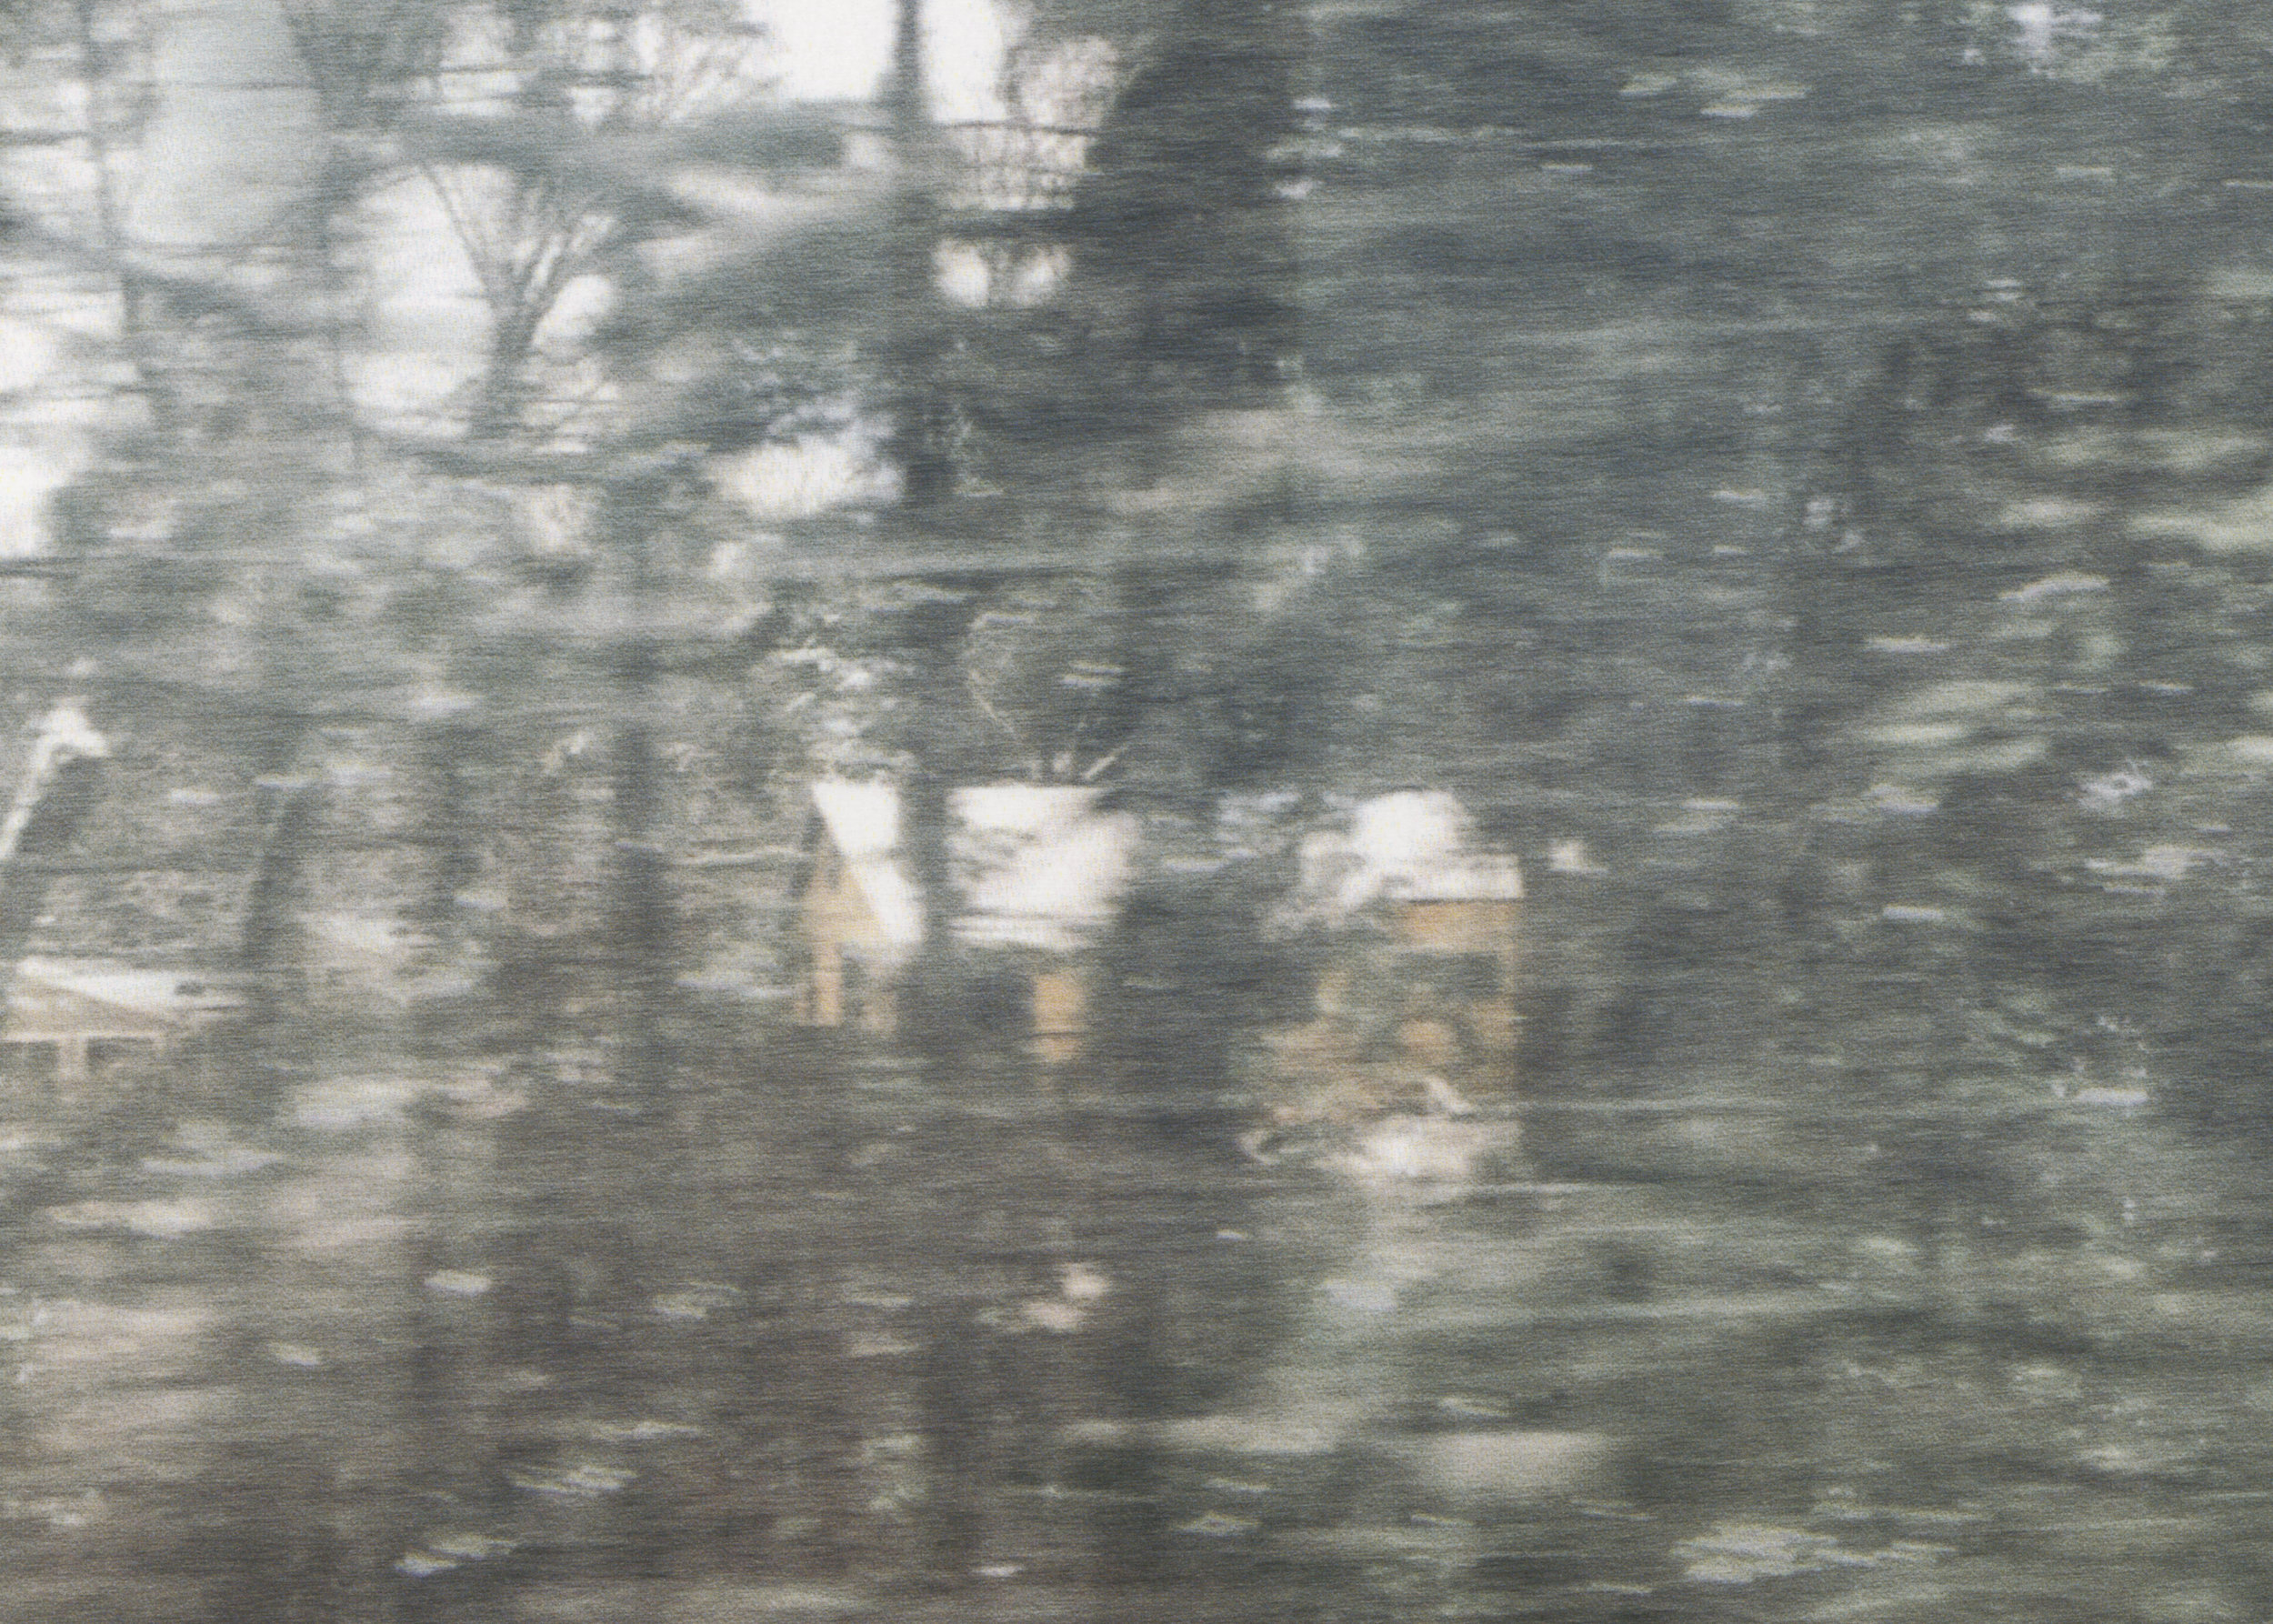 Untitled (glass, forest, house)  (detail), pigment print on paper, sheet: 98.1 × 72 cm (38 5/8 × 28 3/8 in), framed: 109 × 82.4 cm (42 7/8 × 32 1/2 in), 2019